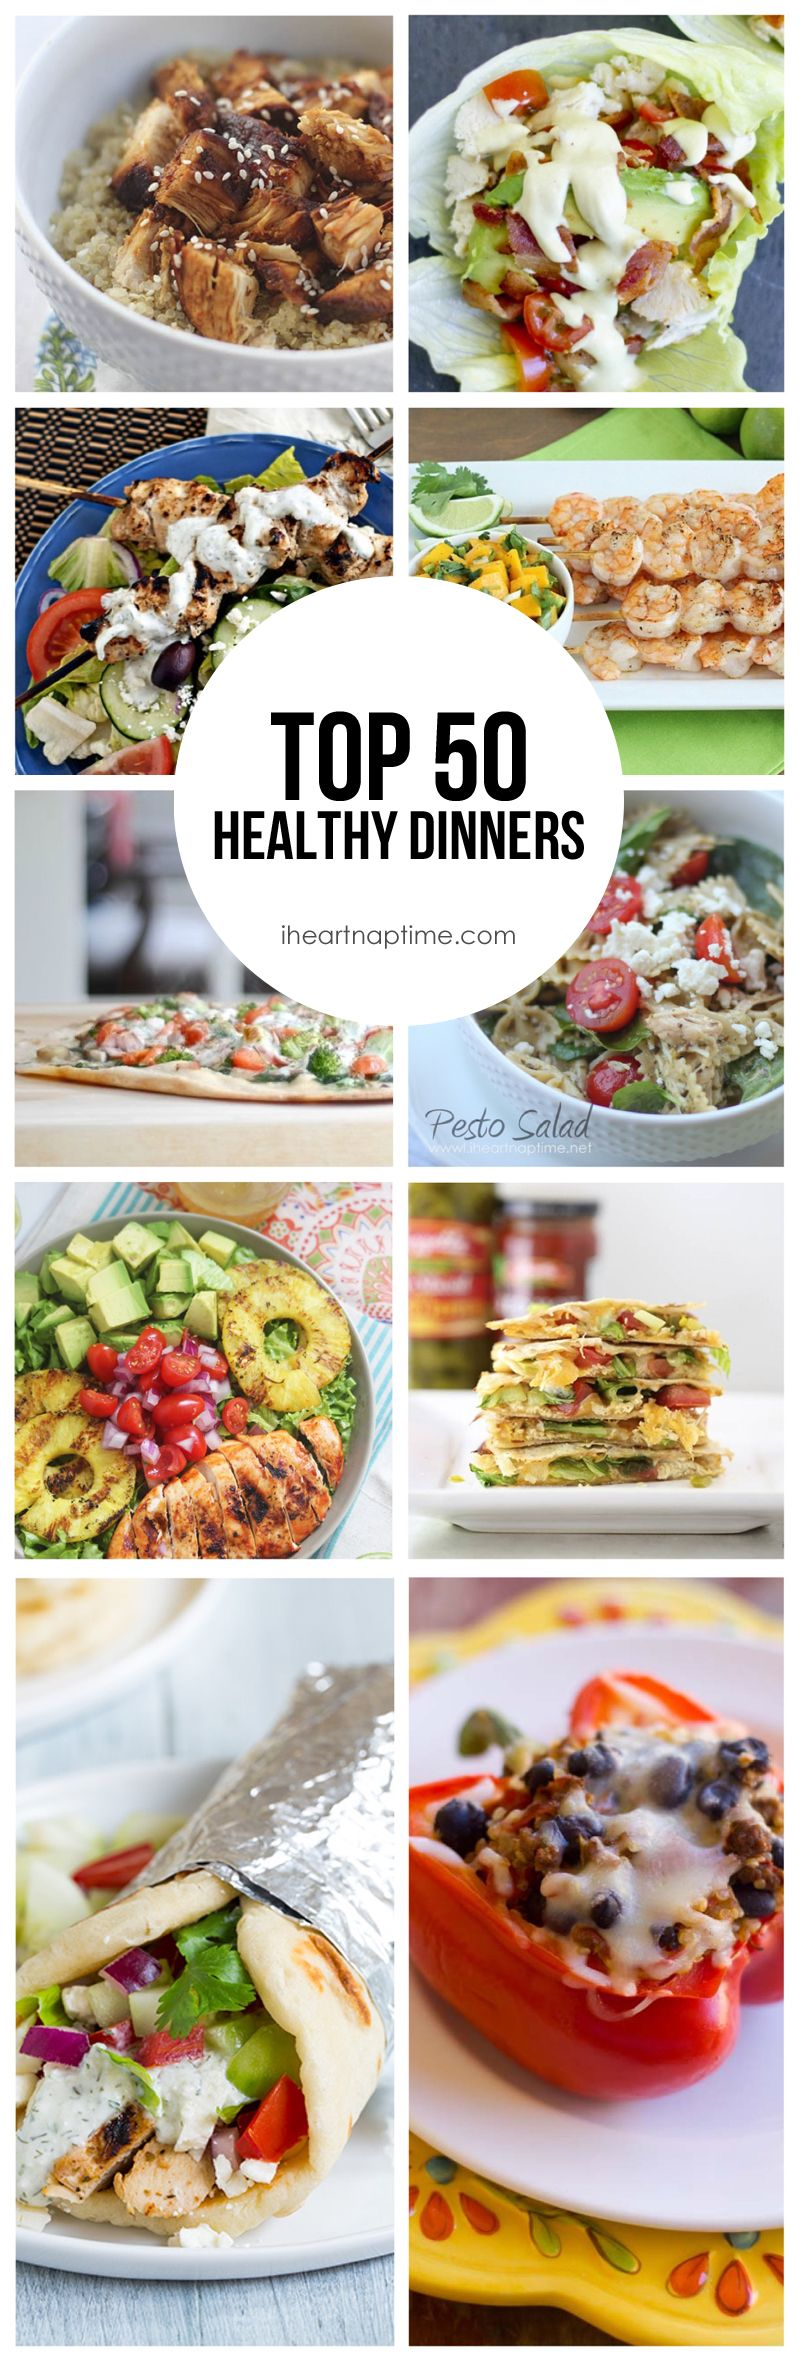 Top 50 healthy dinners lowfatlow carb low sugar foods healthy recipes top 50 healthy dinners tasty healthy mealsheart forumfinder Images